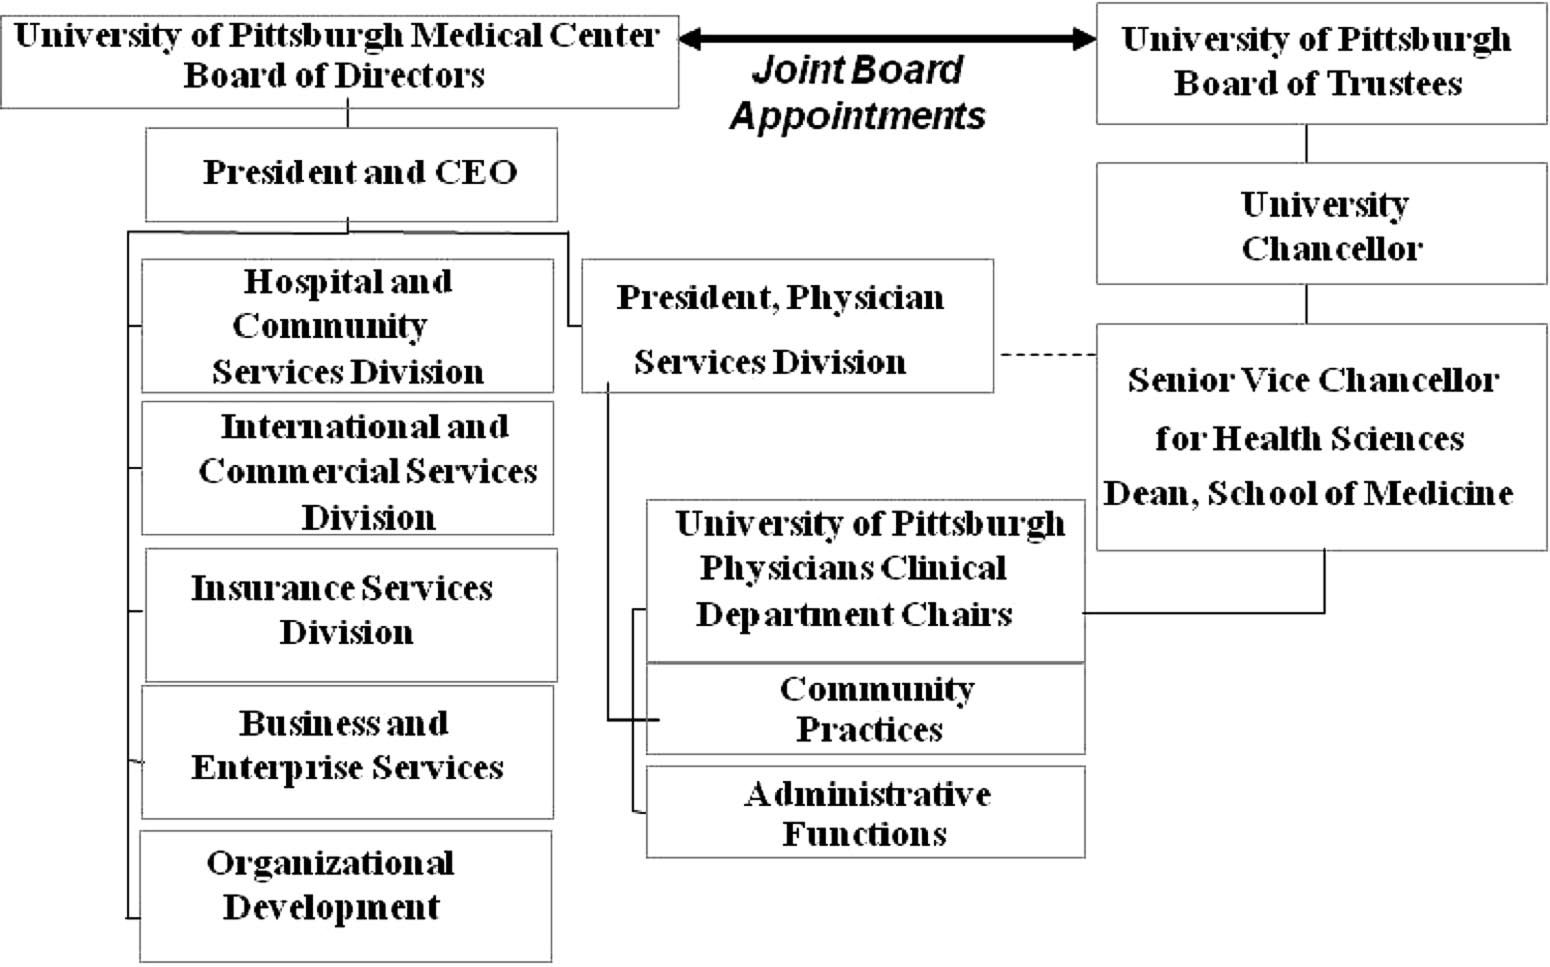 Figure 1 University of Pittsburgh Medical Center (UPMC) / University of Pittsburgh (Pitt) relationship (simplified).